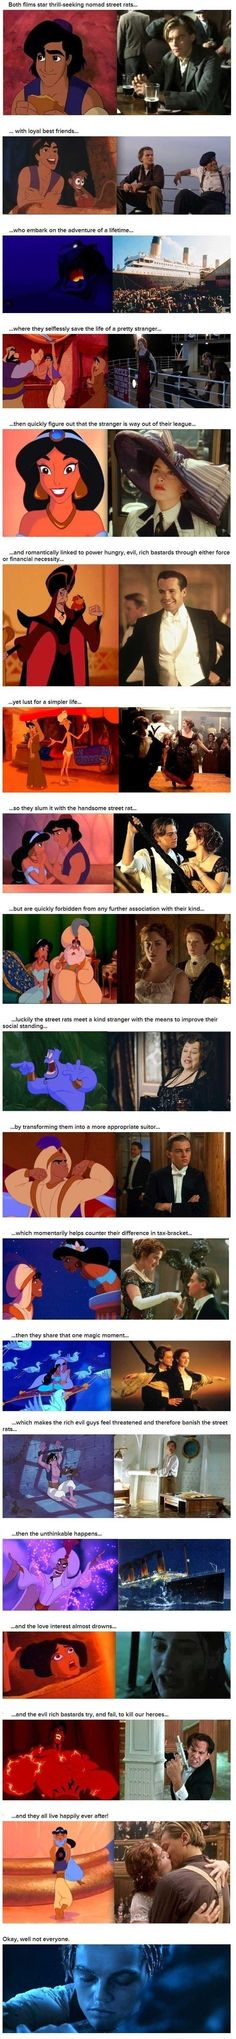 Comparing Titanic to Aladdin. haha pretty cool!